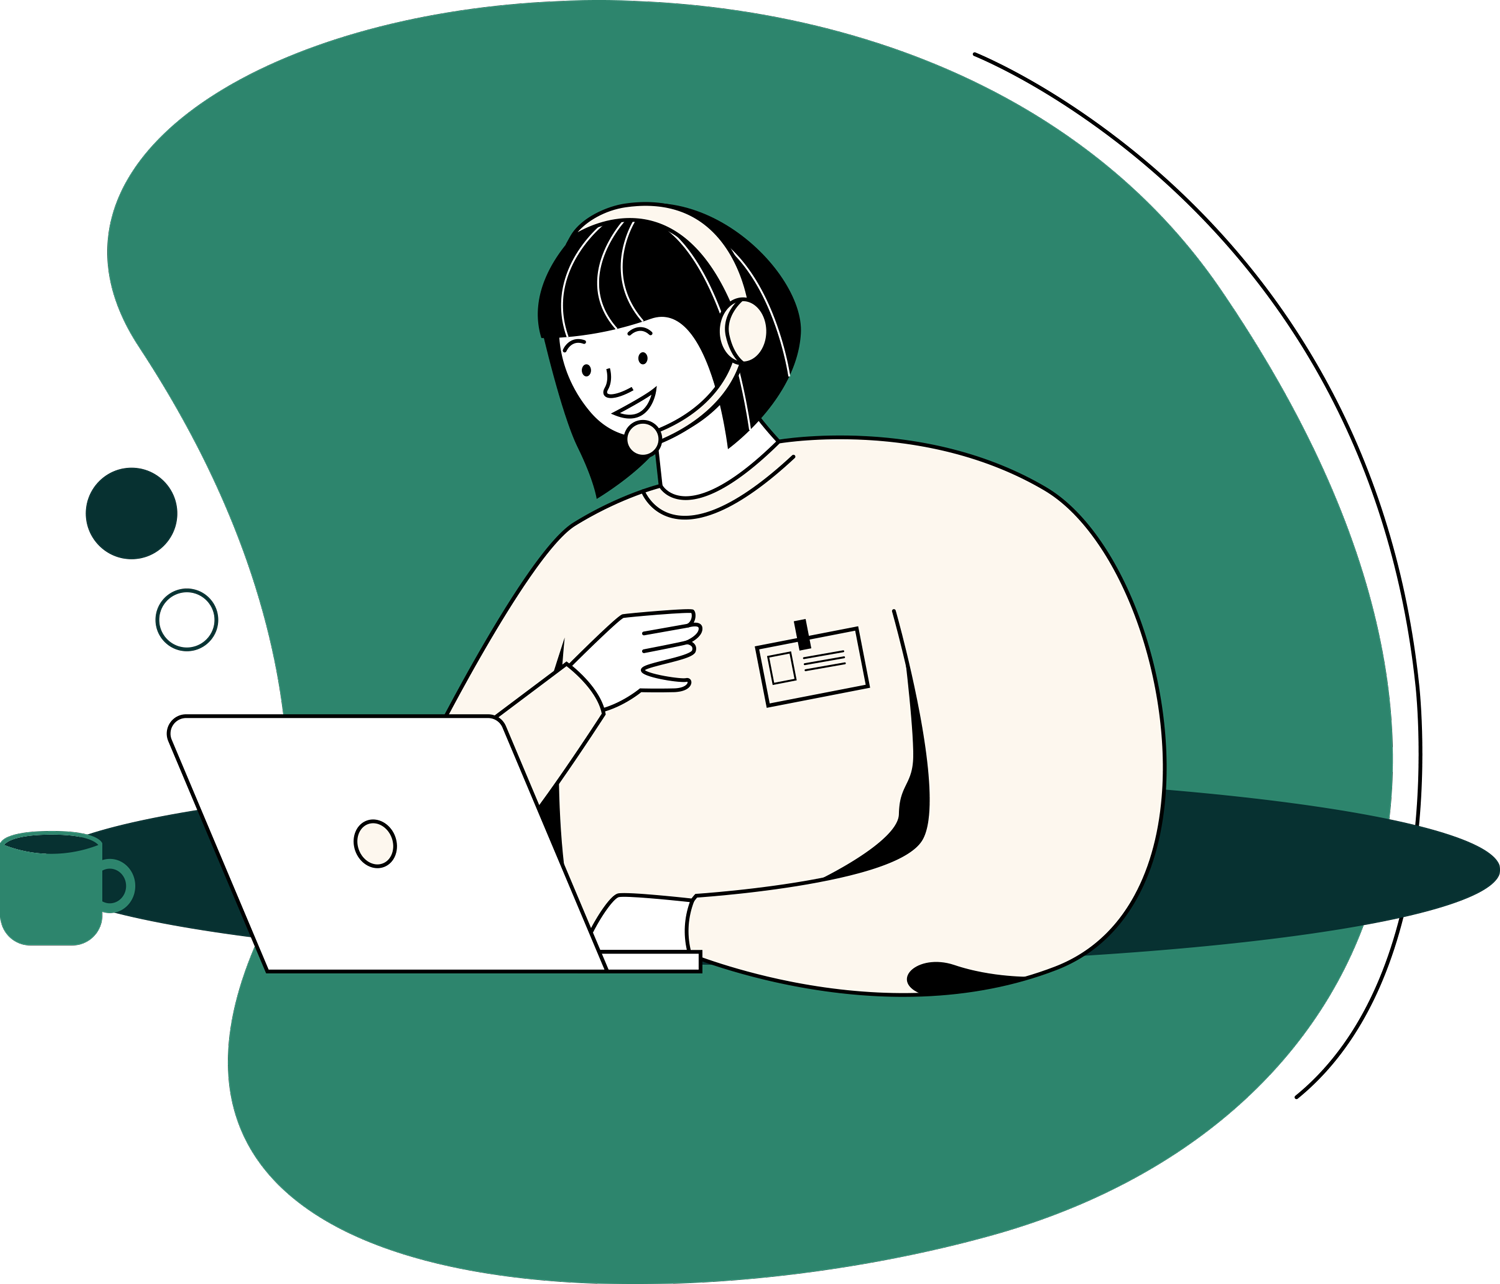 An illustration of a person wearing a headset on a video call.